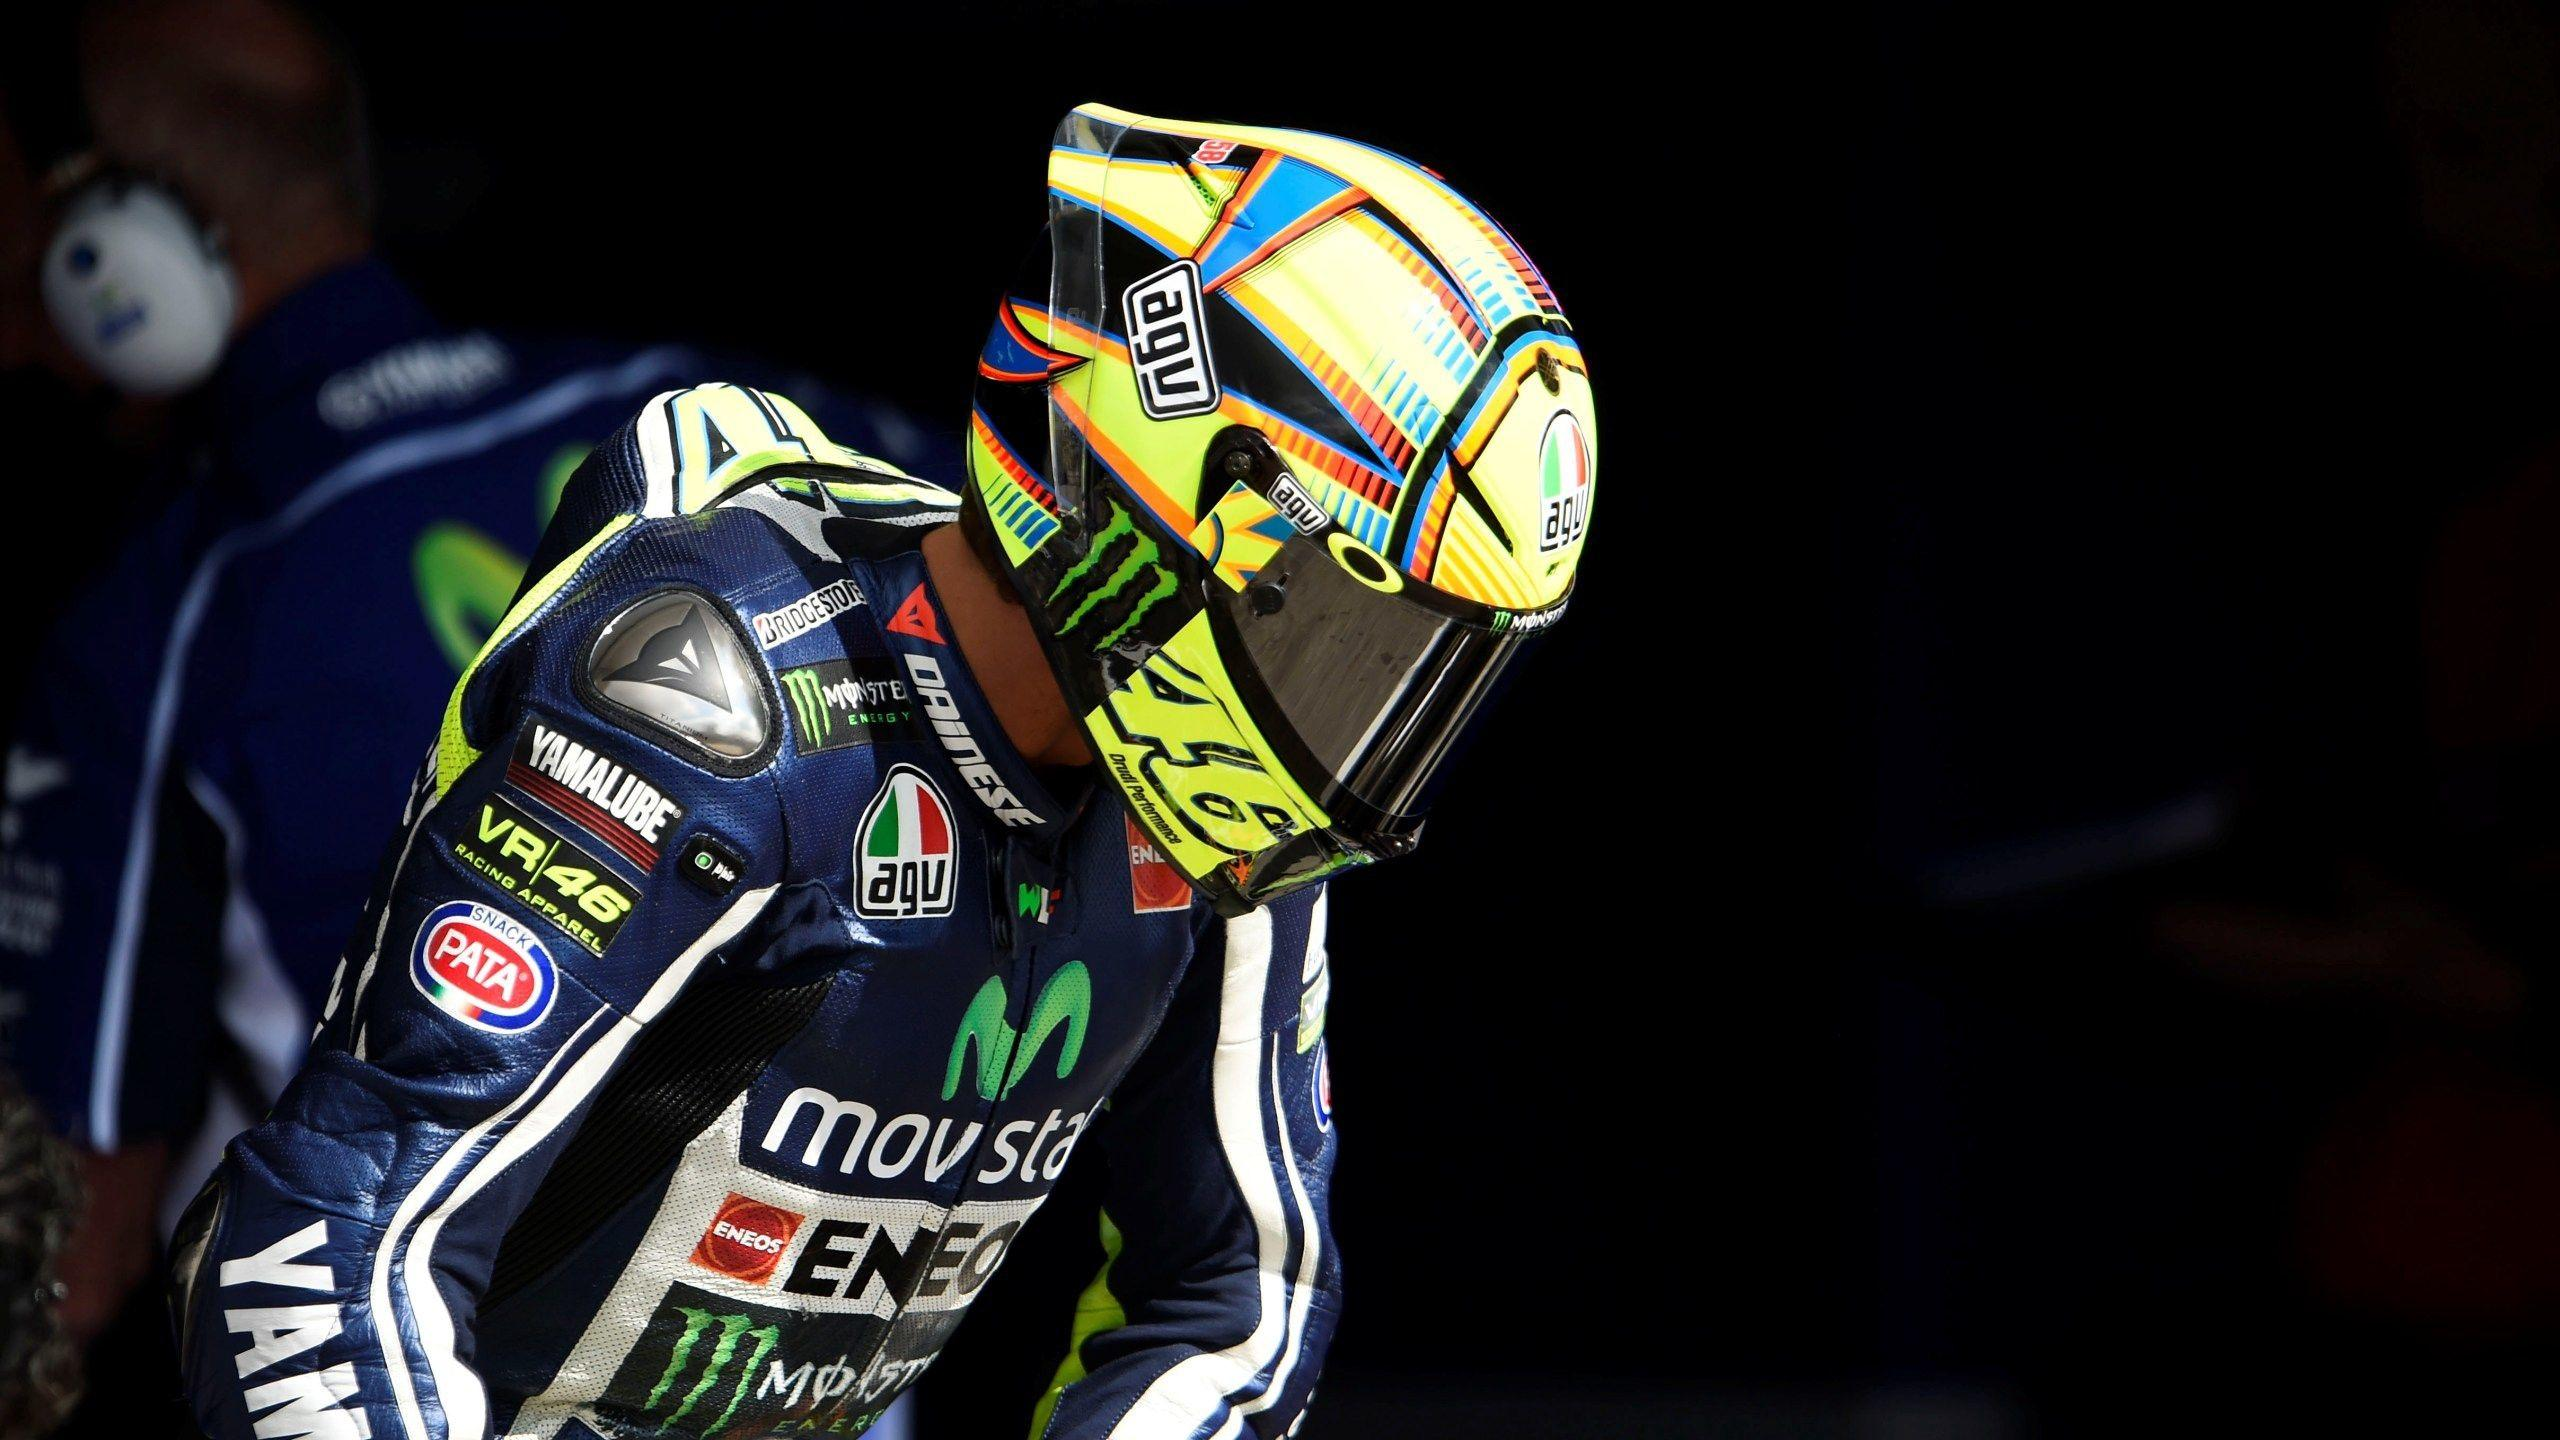 Download wallpapers 2560x1440 valentino rossi, yamaha, motorcycle